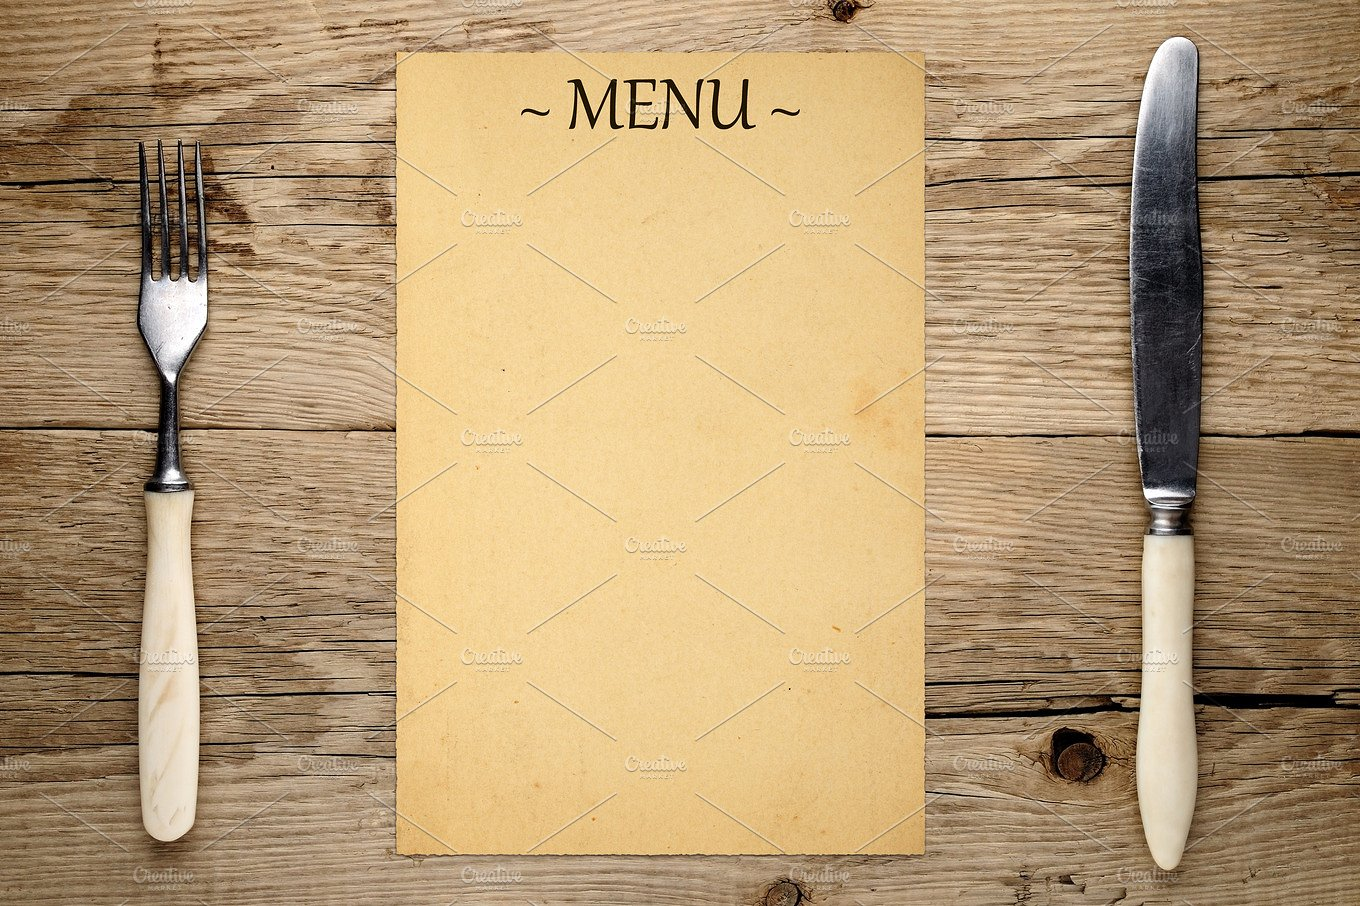 16 Blank Menu Designs Psd Vector Format Download Design Trends Premium Psd Vector Downloads